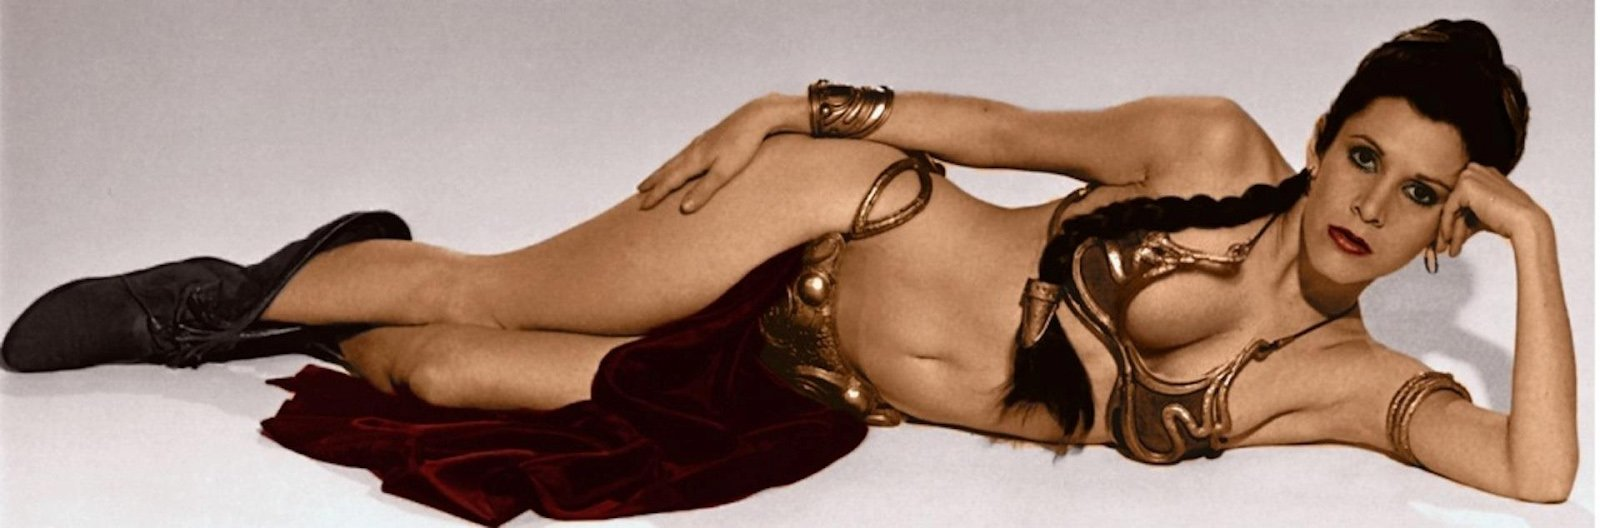 Star-Wars-Princess-Leia-Slave-Wallpaper-1600-x-528